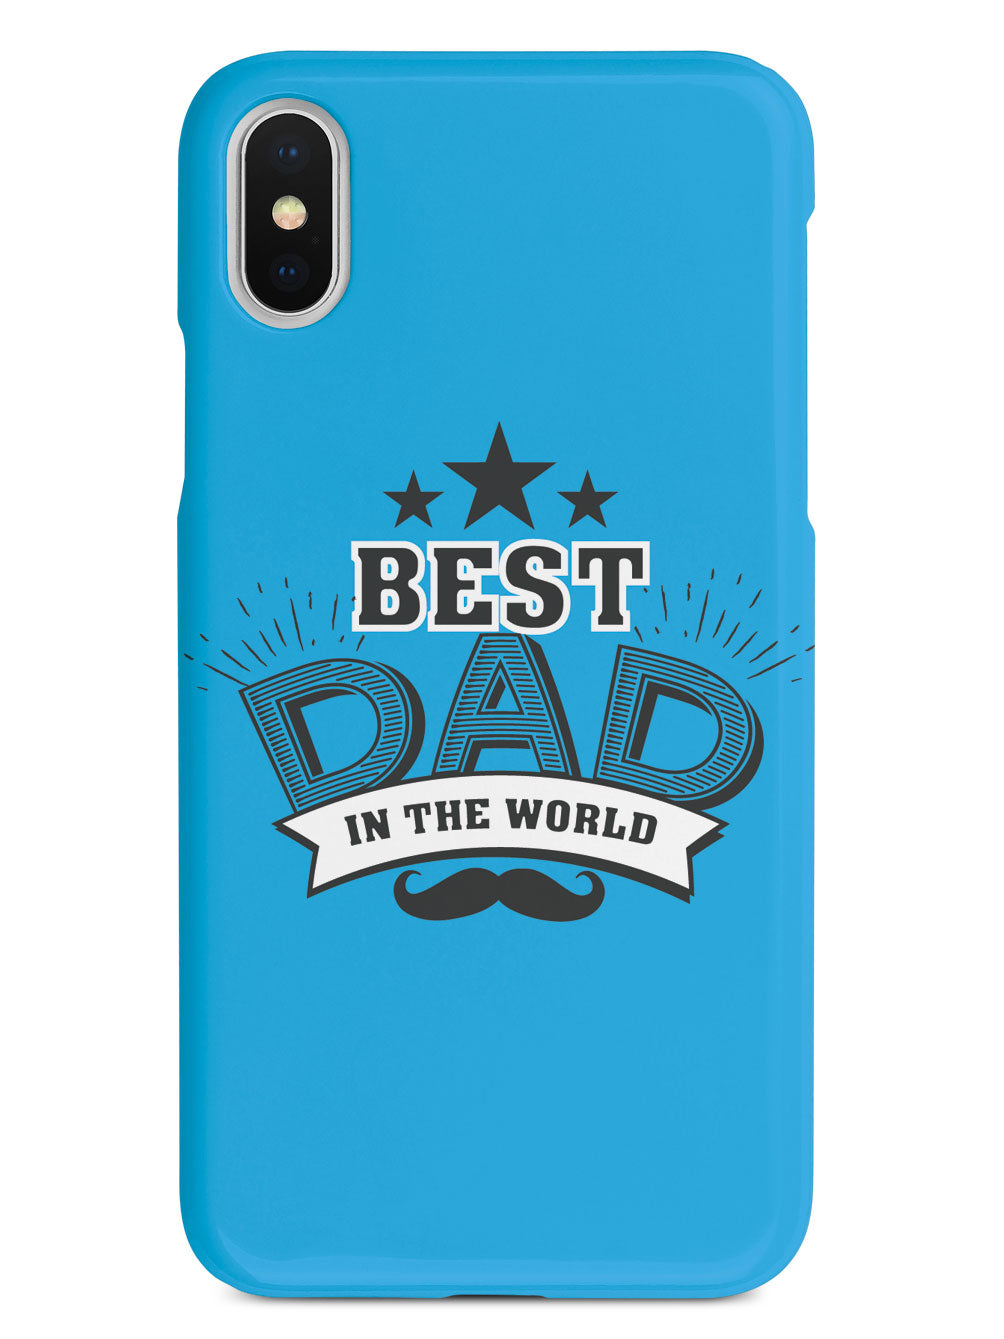 Best Dad In The World - White Case